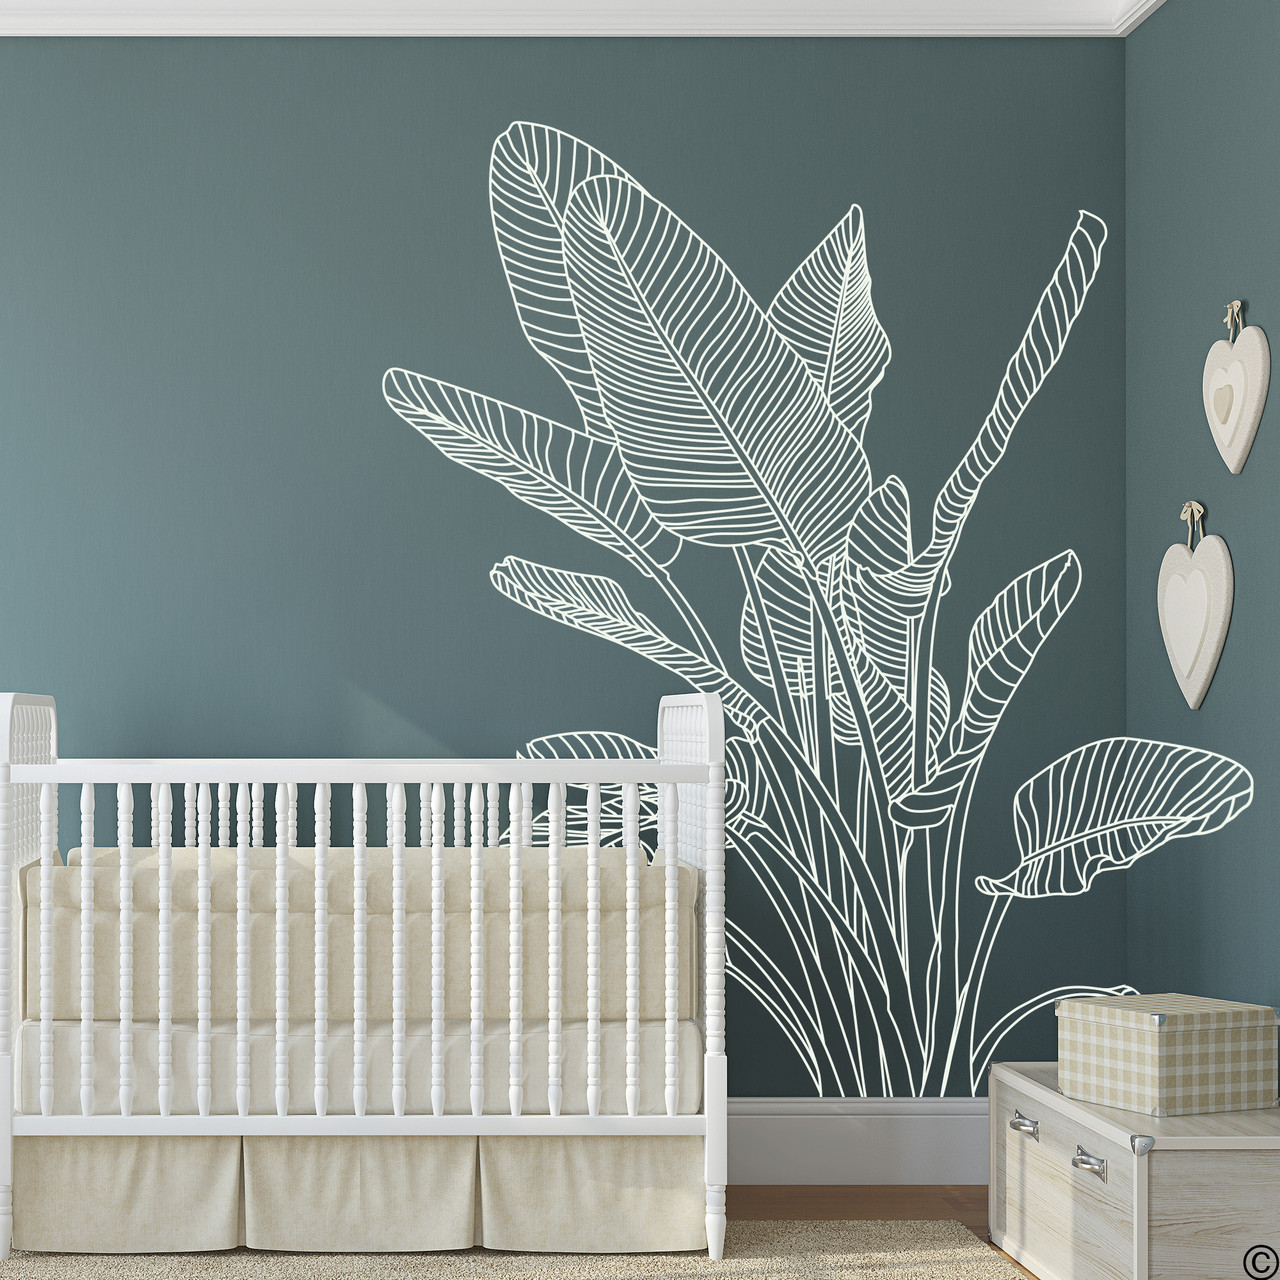 The Bird of Paradise wall decal art shown here in limited edition antique lace vinyl color.